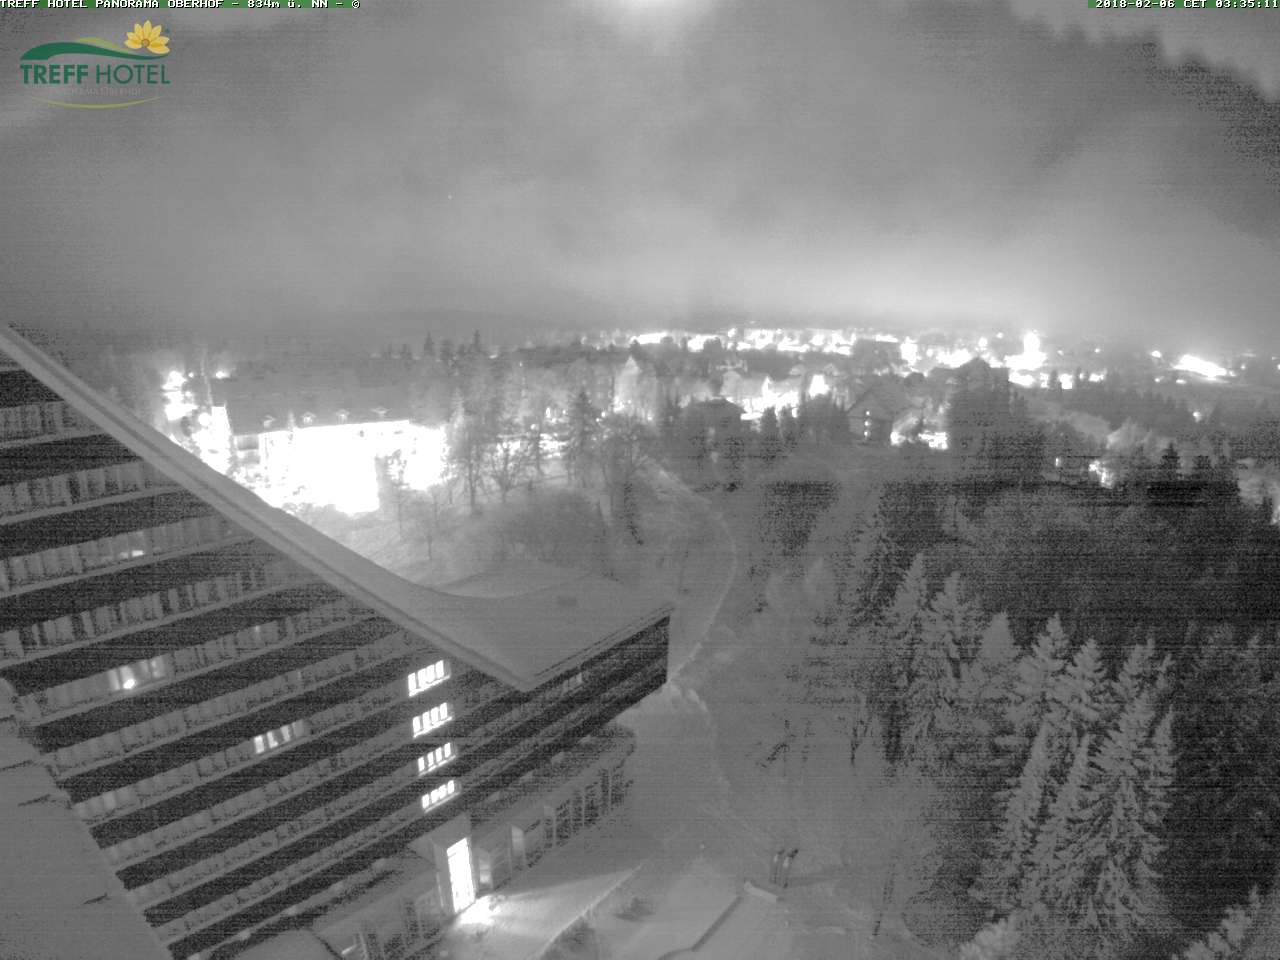 Webcam Treff Hotel Panorama Oberhof